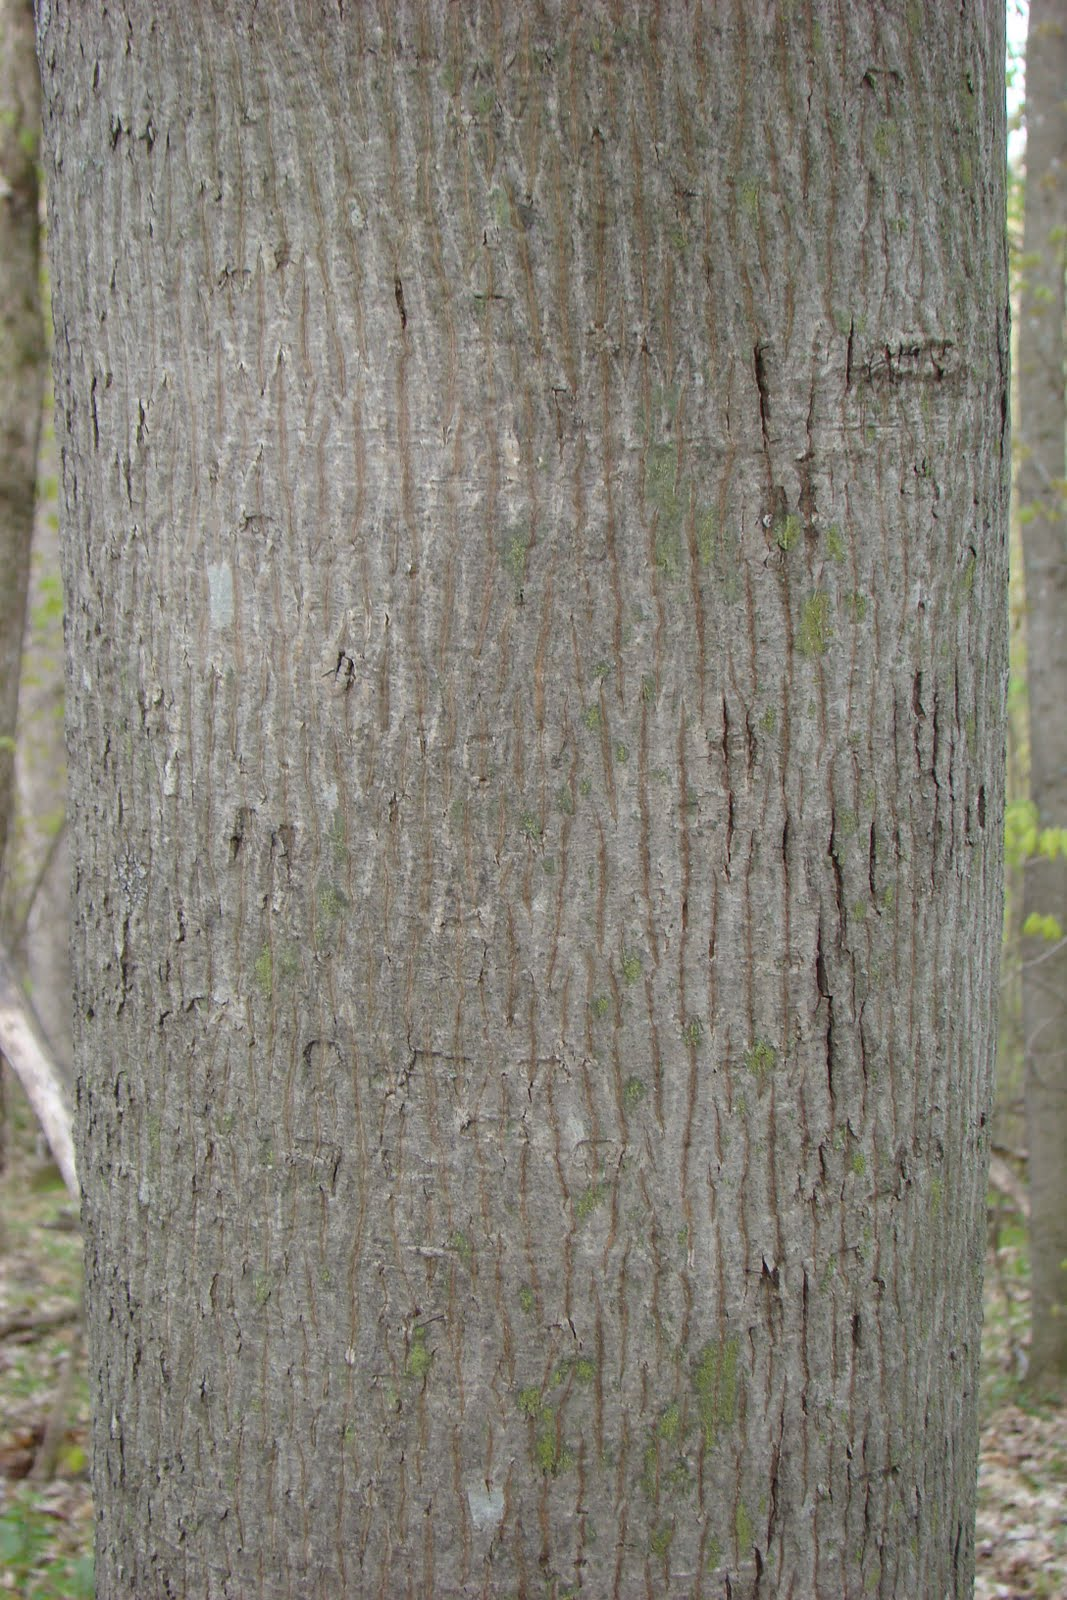 Hickory Tree Identification http://birdyword.blogspot.com/2010/04/learning-some-of-wisconsins-trees-by.html